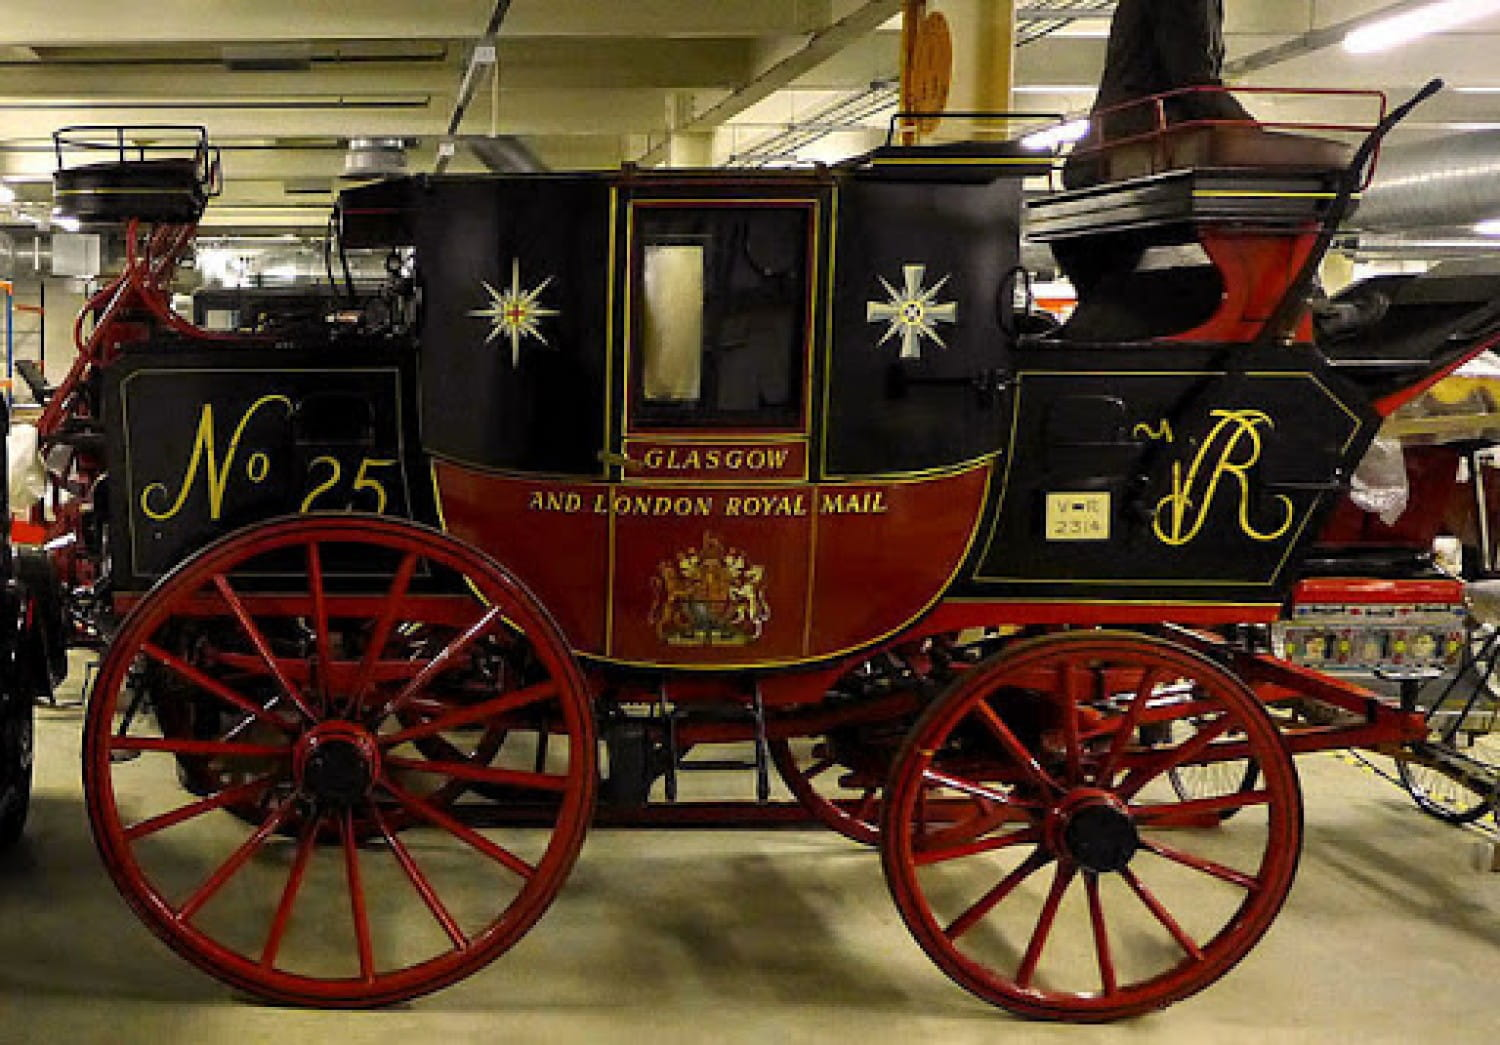 One of the surviving Glasgow/London Mail Coaches